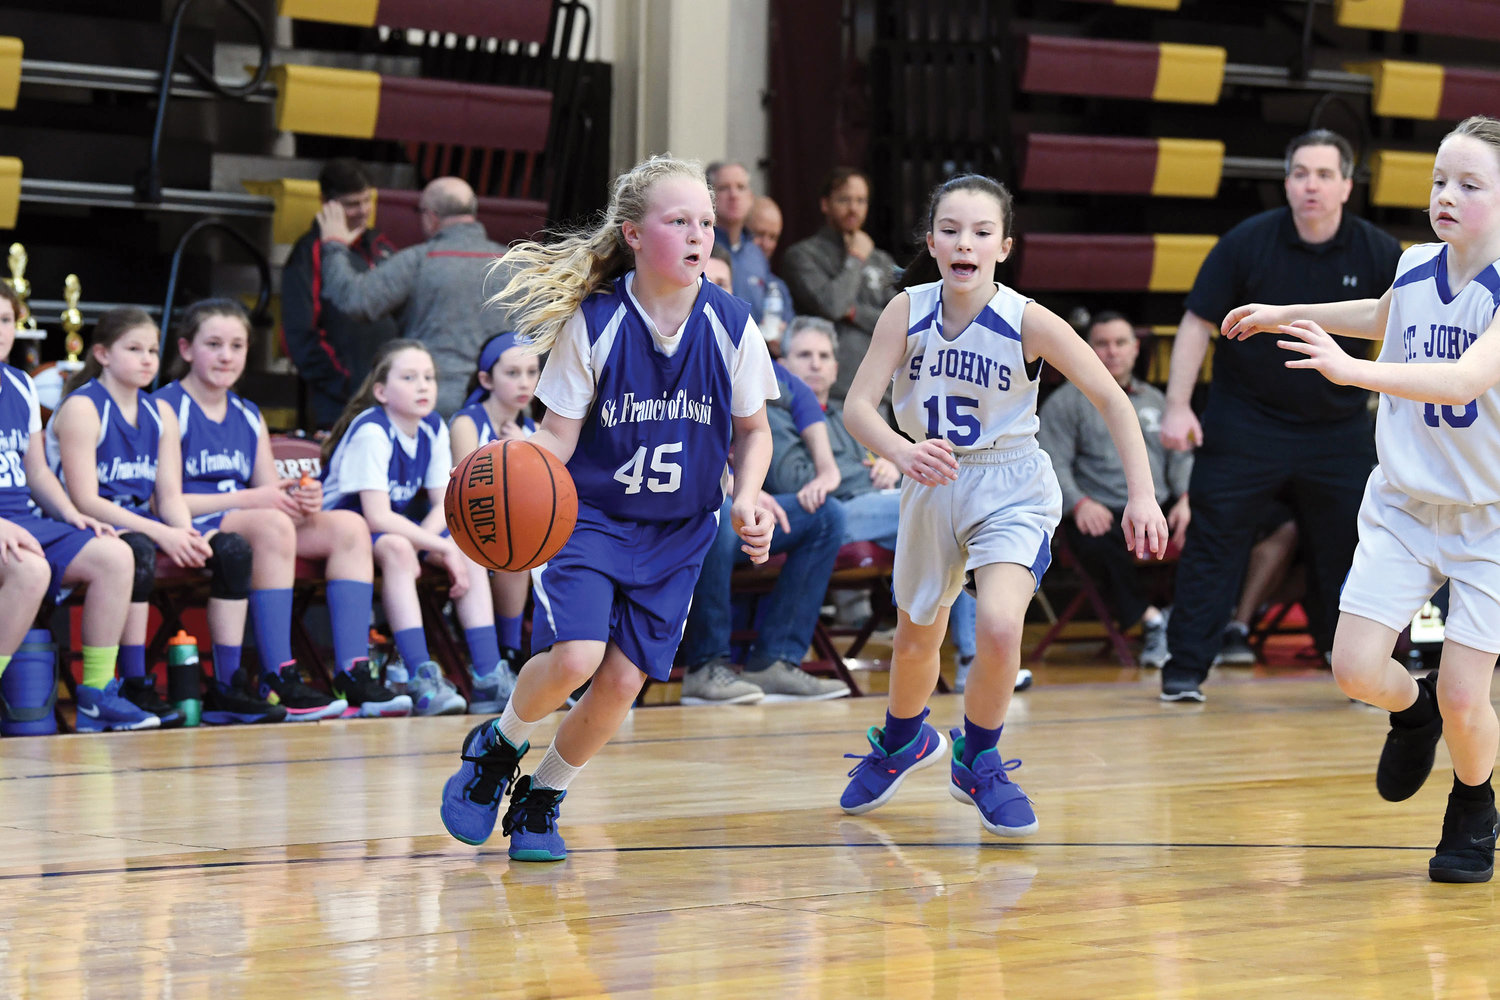 Carley Voce of St. Francis of Assisi, West Nyack, drives to the basket against Gianna Dolan, center, and Ashley Koch, right, of St. John the Evangelist, Mahopac, in the fifth grade girls' championship game.